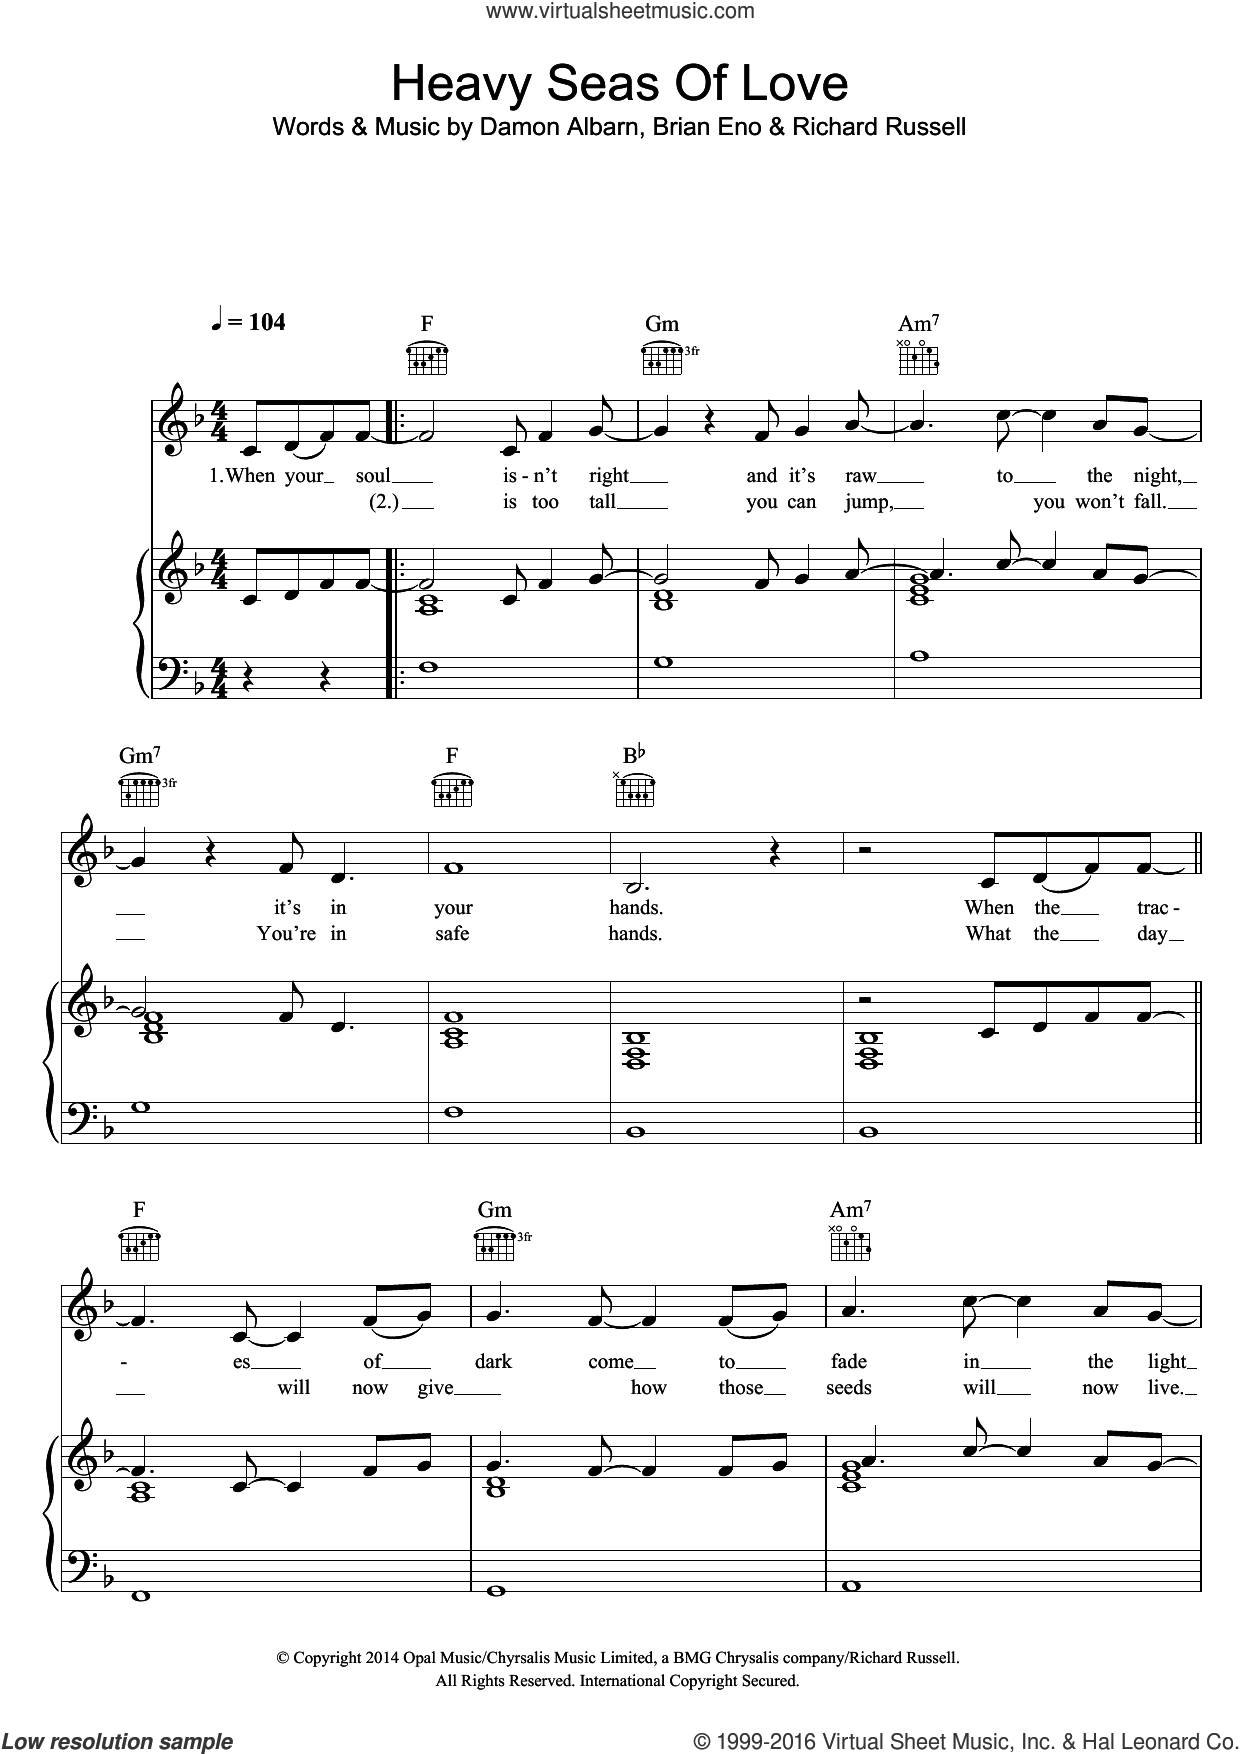 Heavy Seas Of Love sheet music for voice, piano or guitar by Damon Albarn, Brian Eno and Richard Russell, intermediate skill level